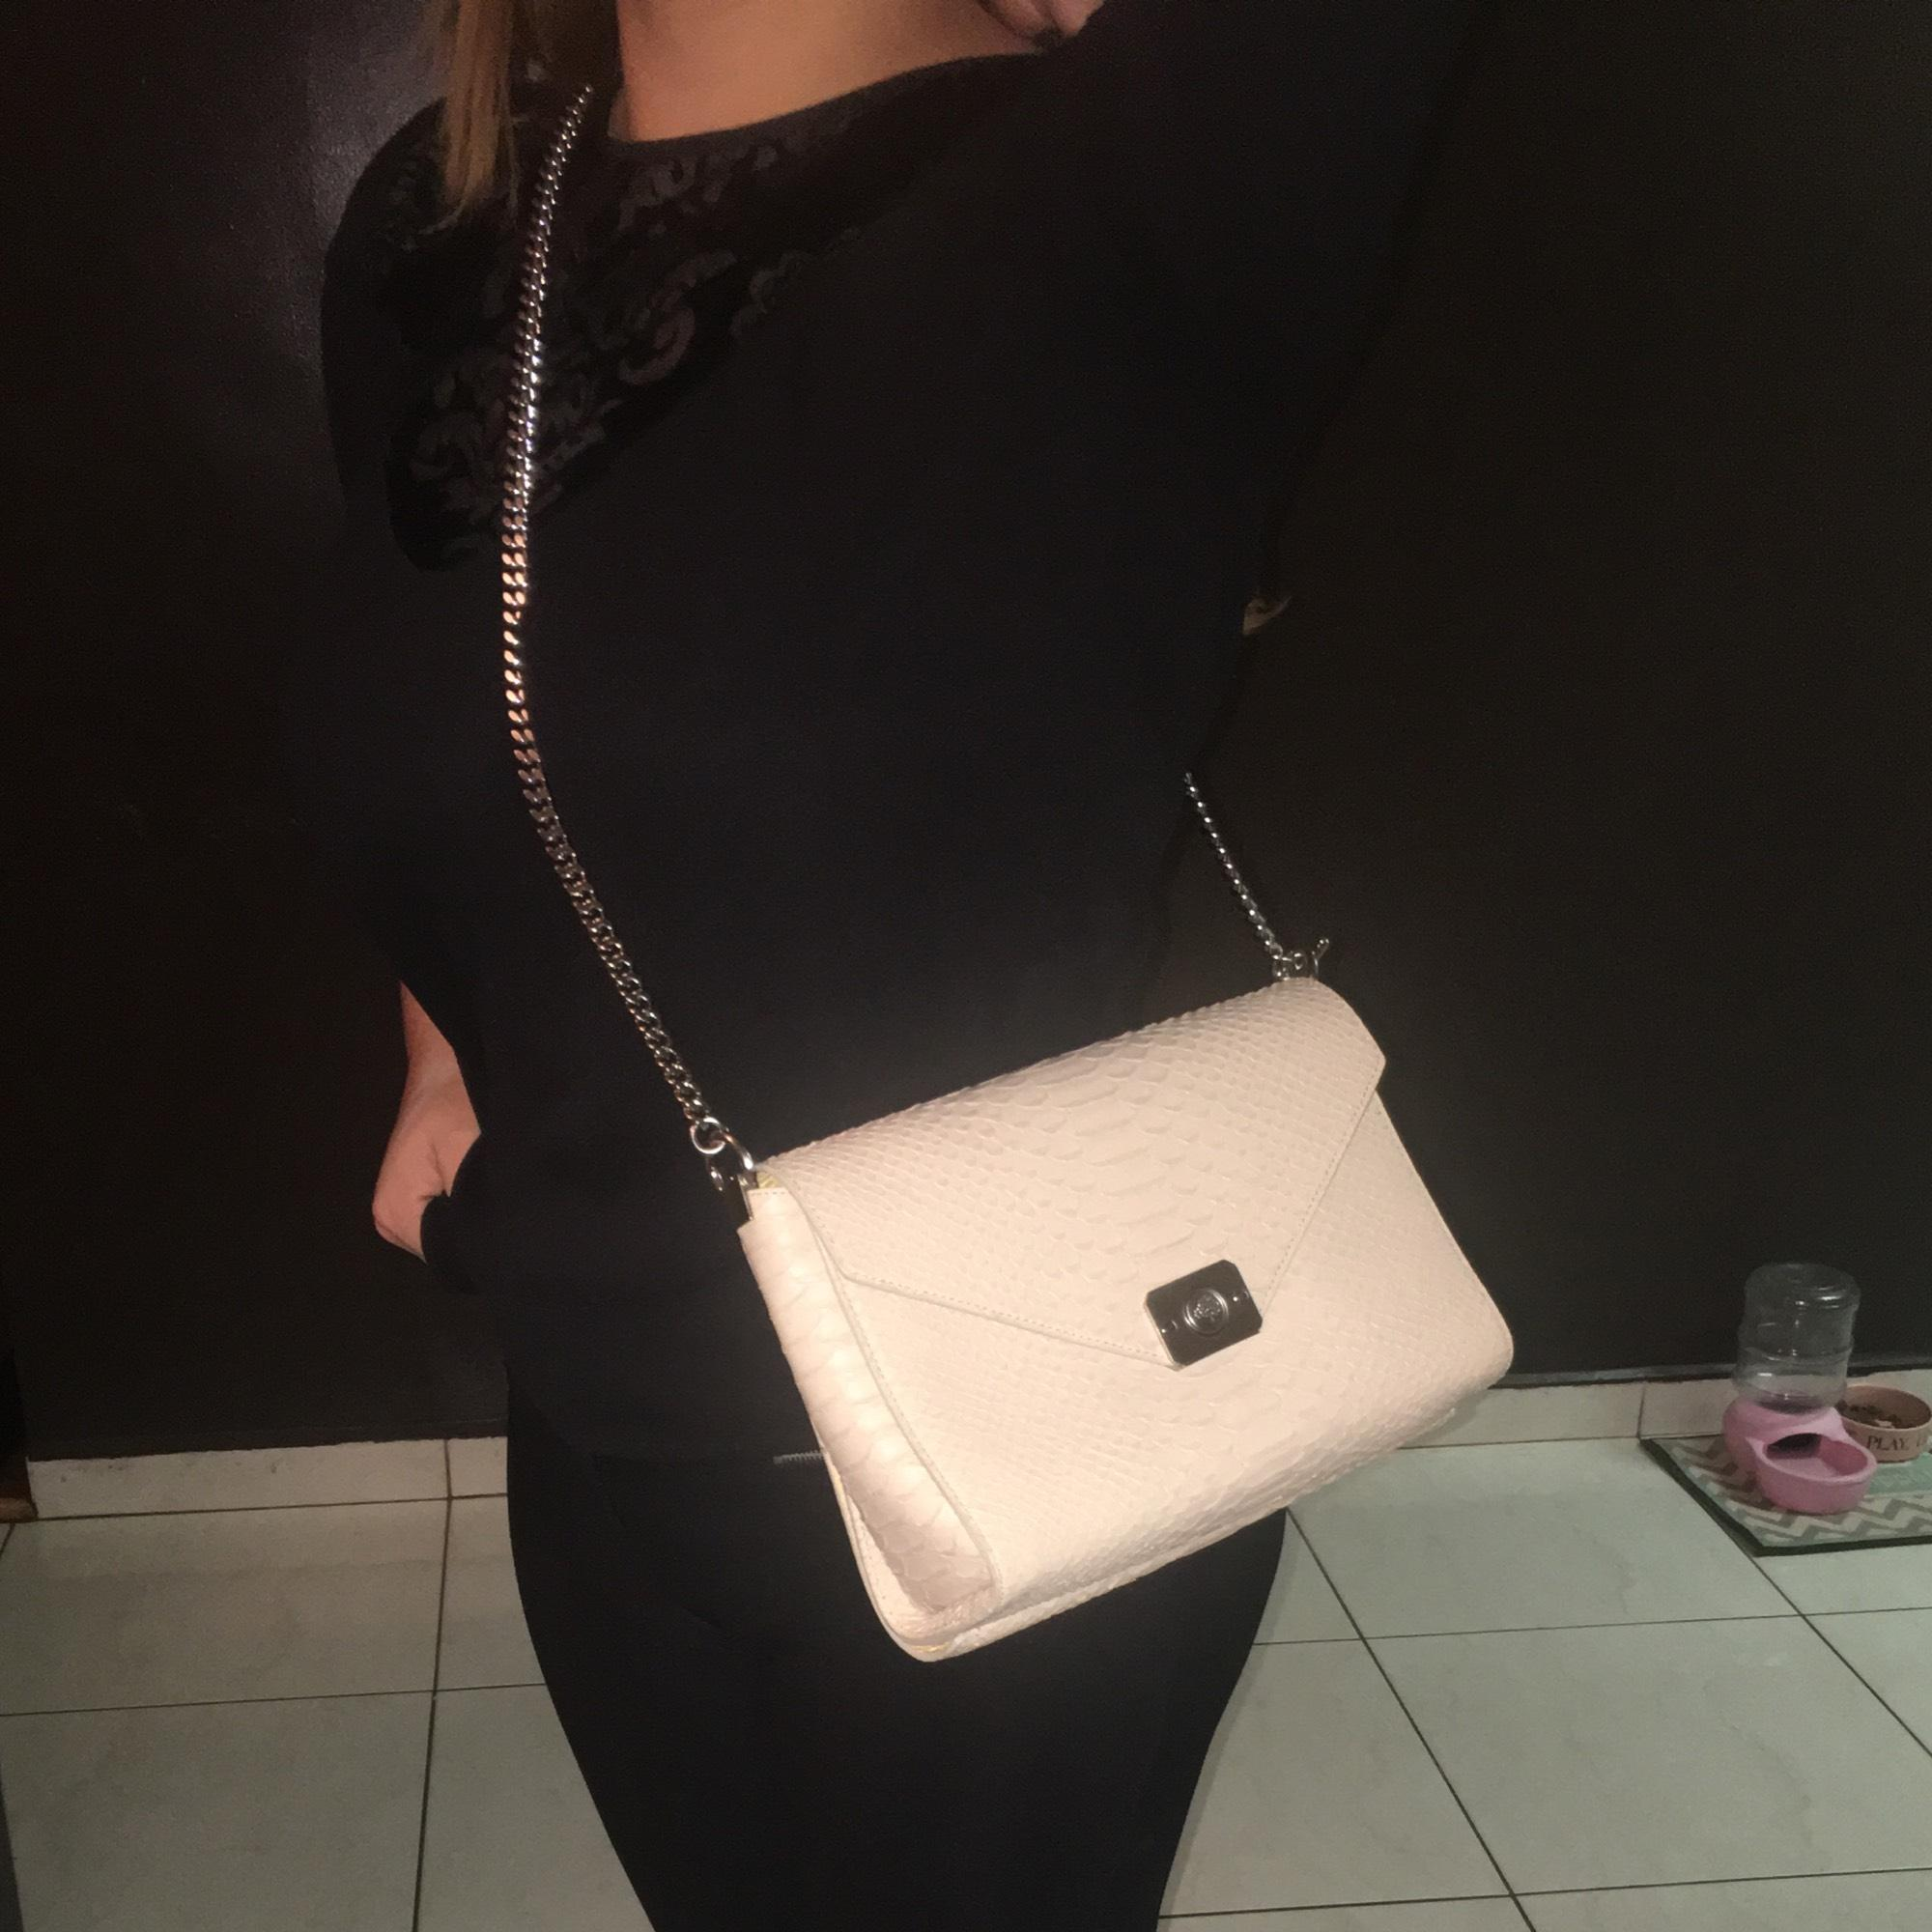 ... discount code for mulberry delphie yellowcream silky snake shoulder bag  tradesy 2cea0 b5bc0 0498312d9e7ae